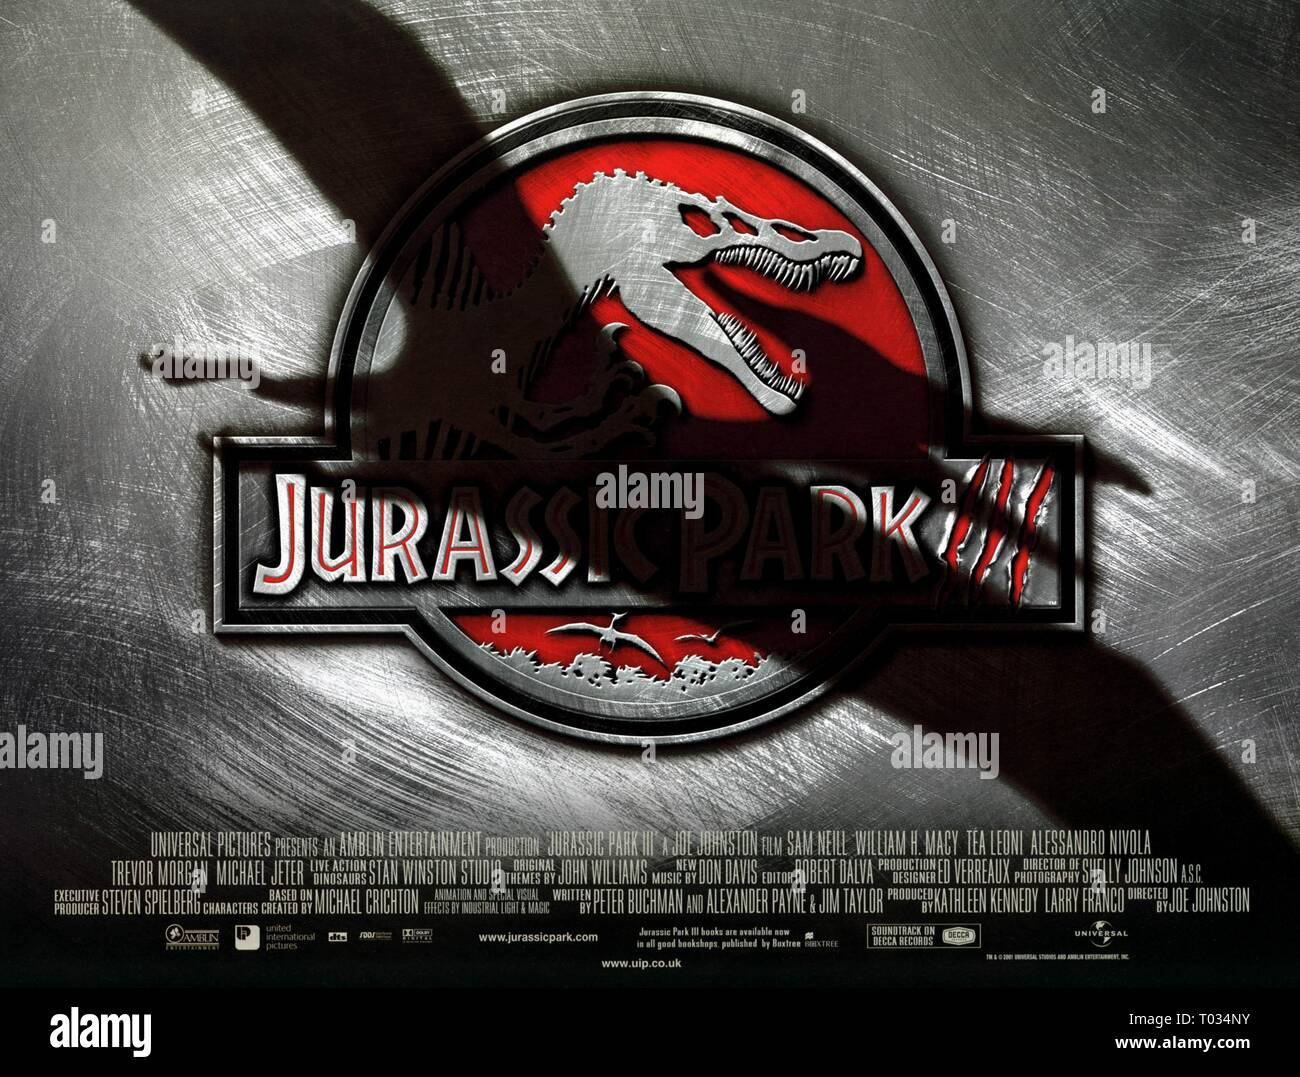 FILM POSTER, JURASSIC PARK III, 2001 Stock Photo: 241014759